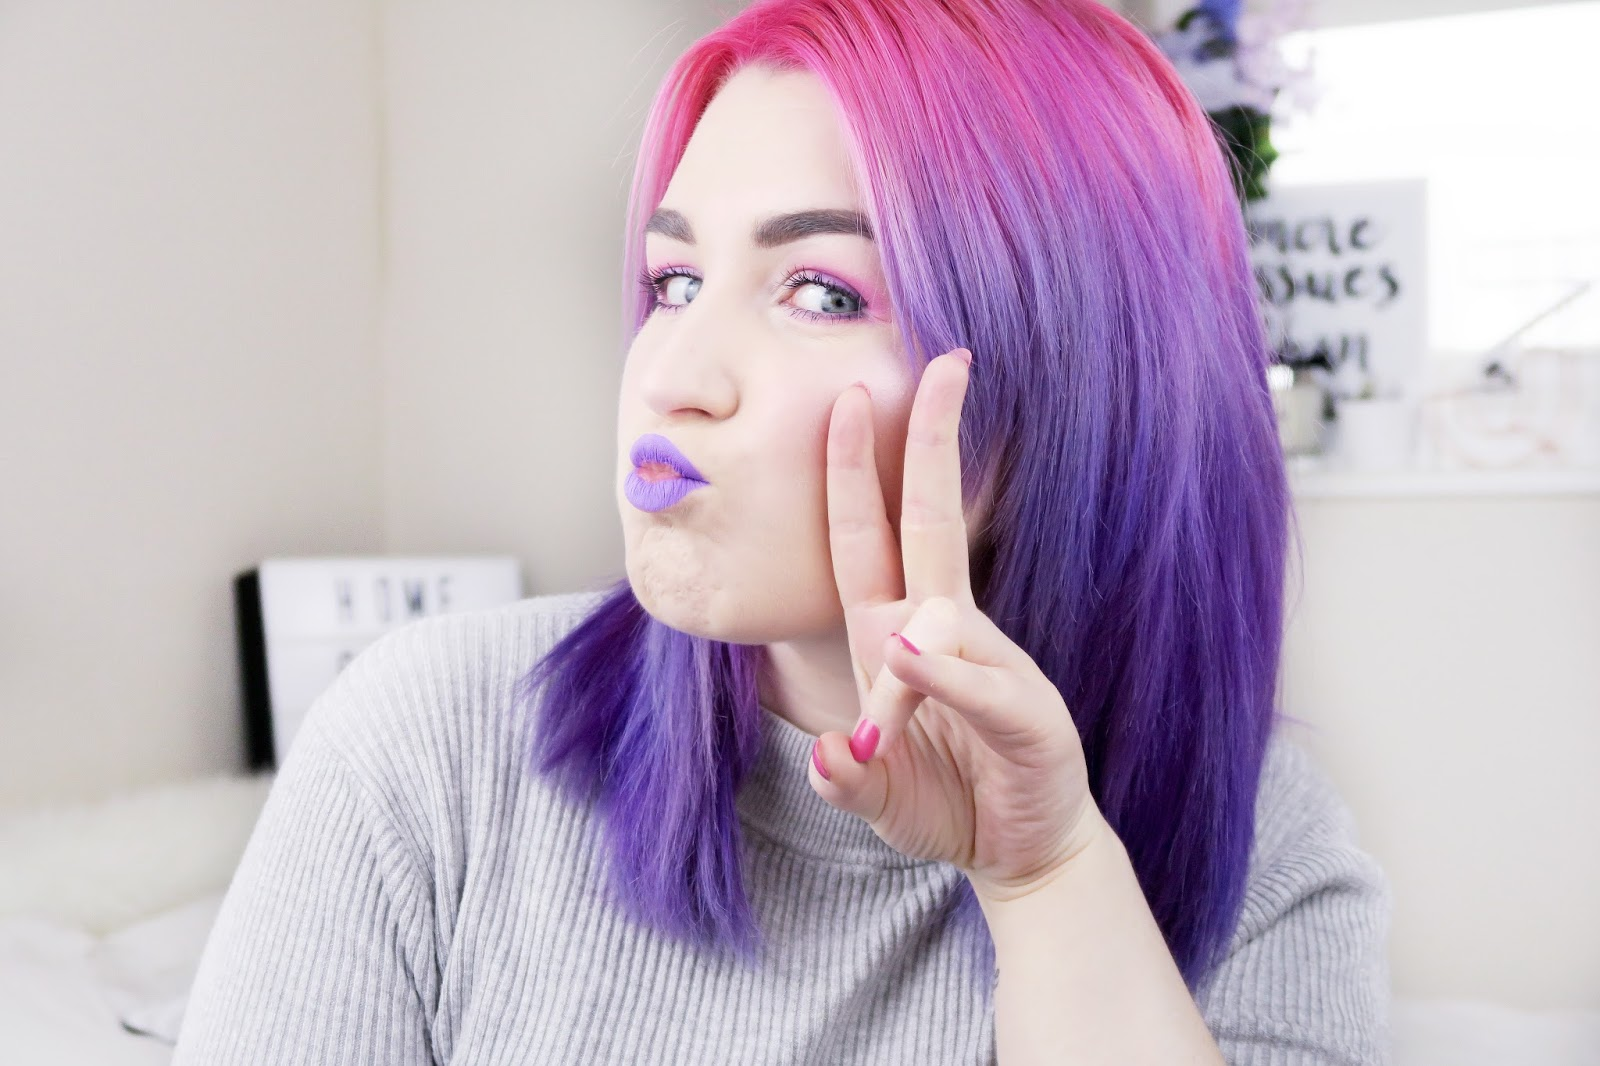 an image of pink and purple hair